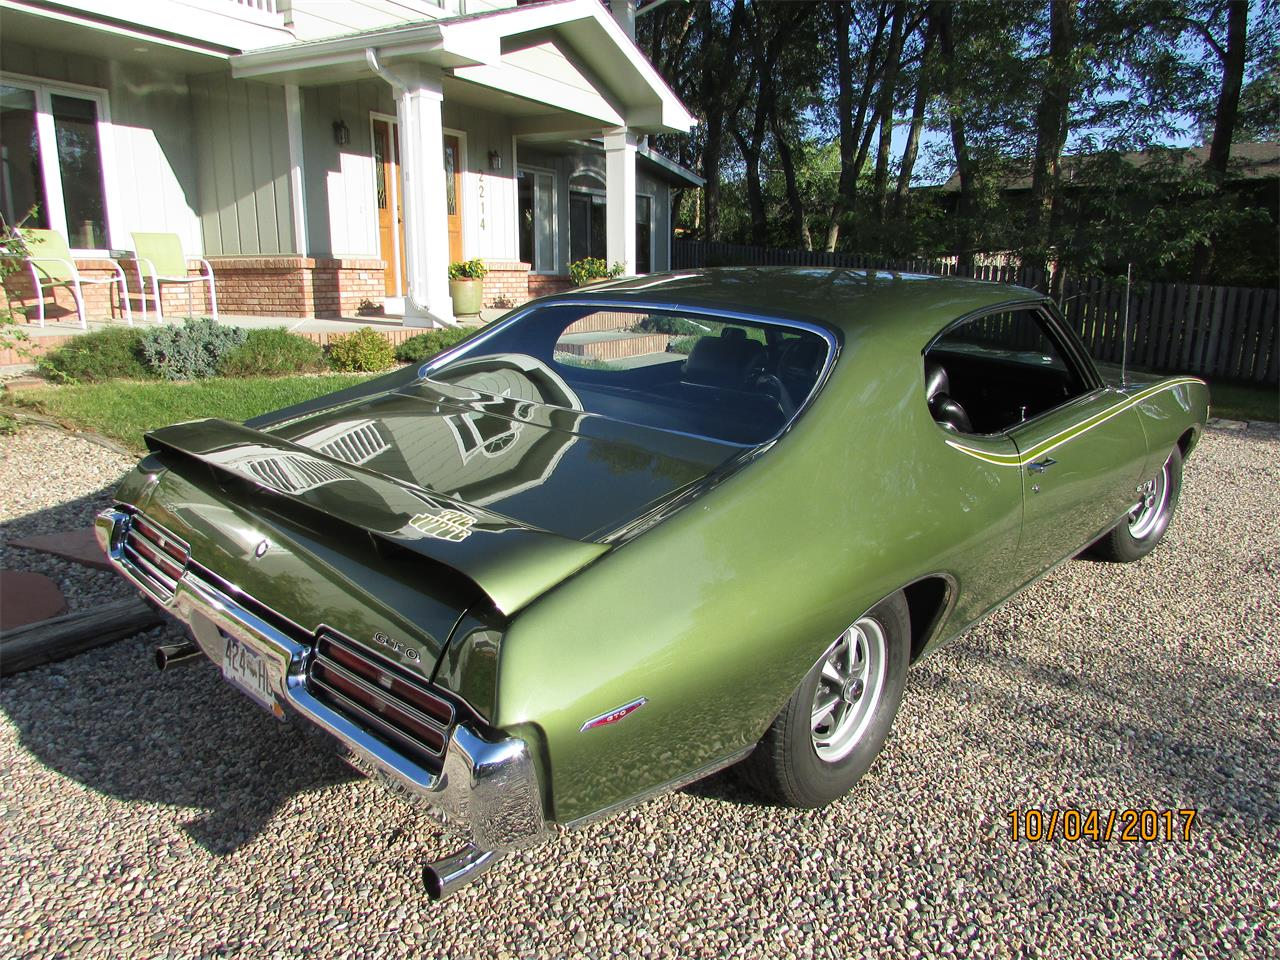 1969 Pontiac GTO (The Judge) (CC-1078181) for sale in Fort Collins, Colorado